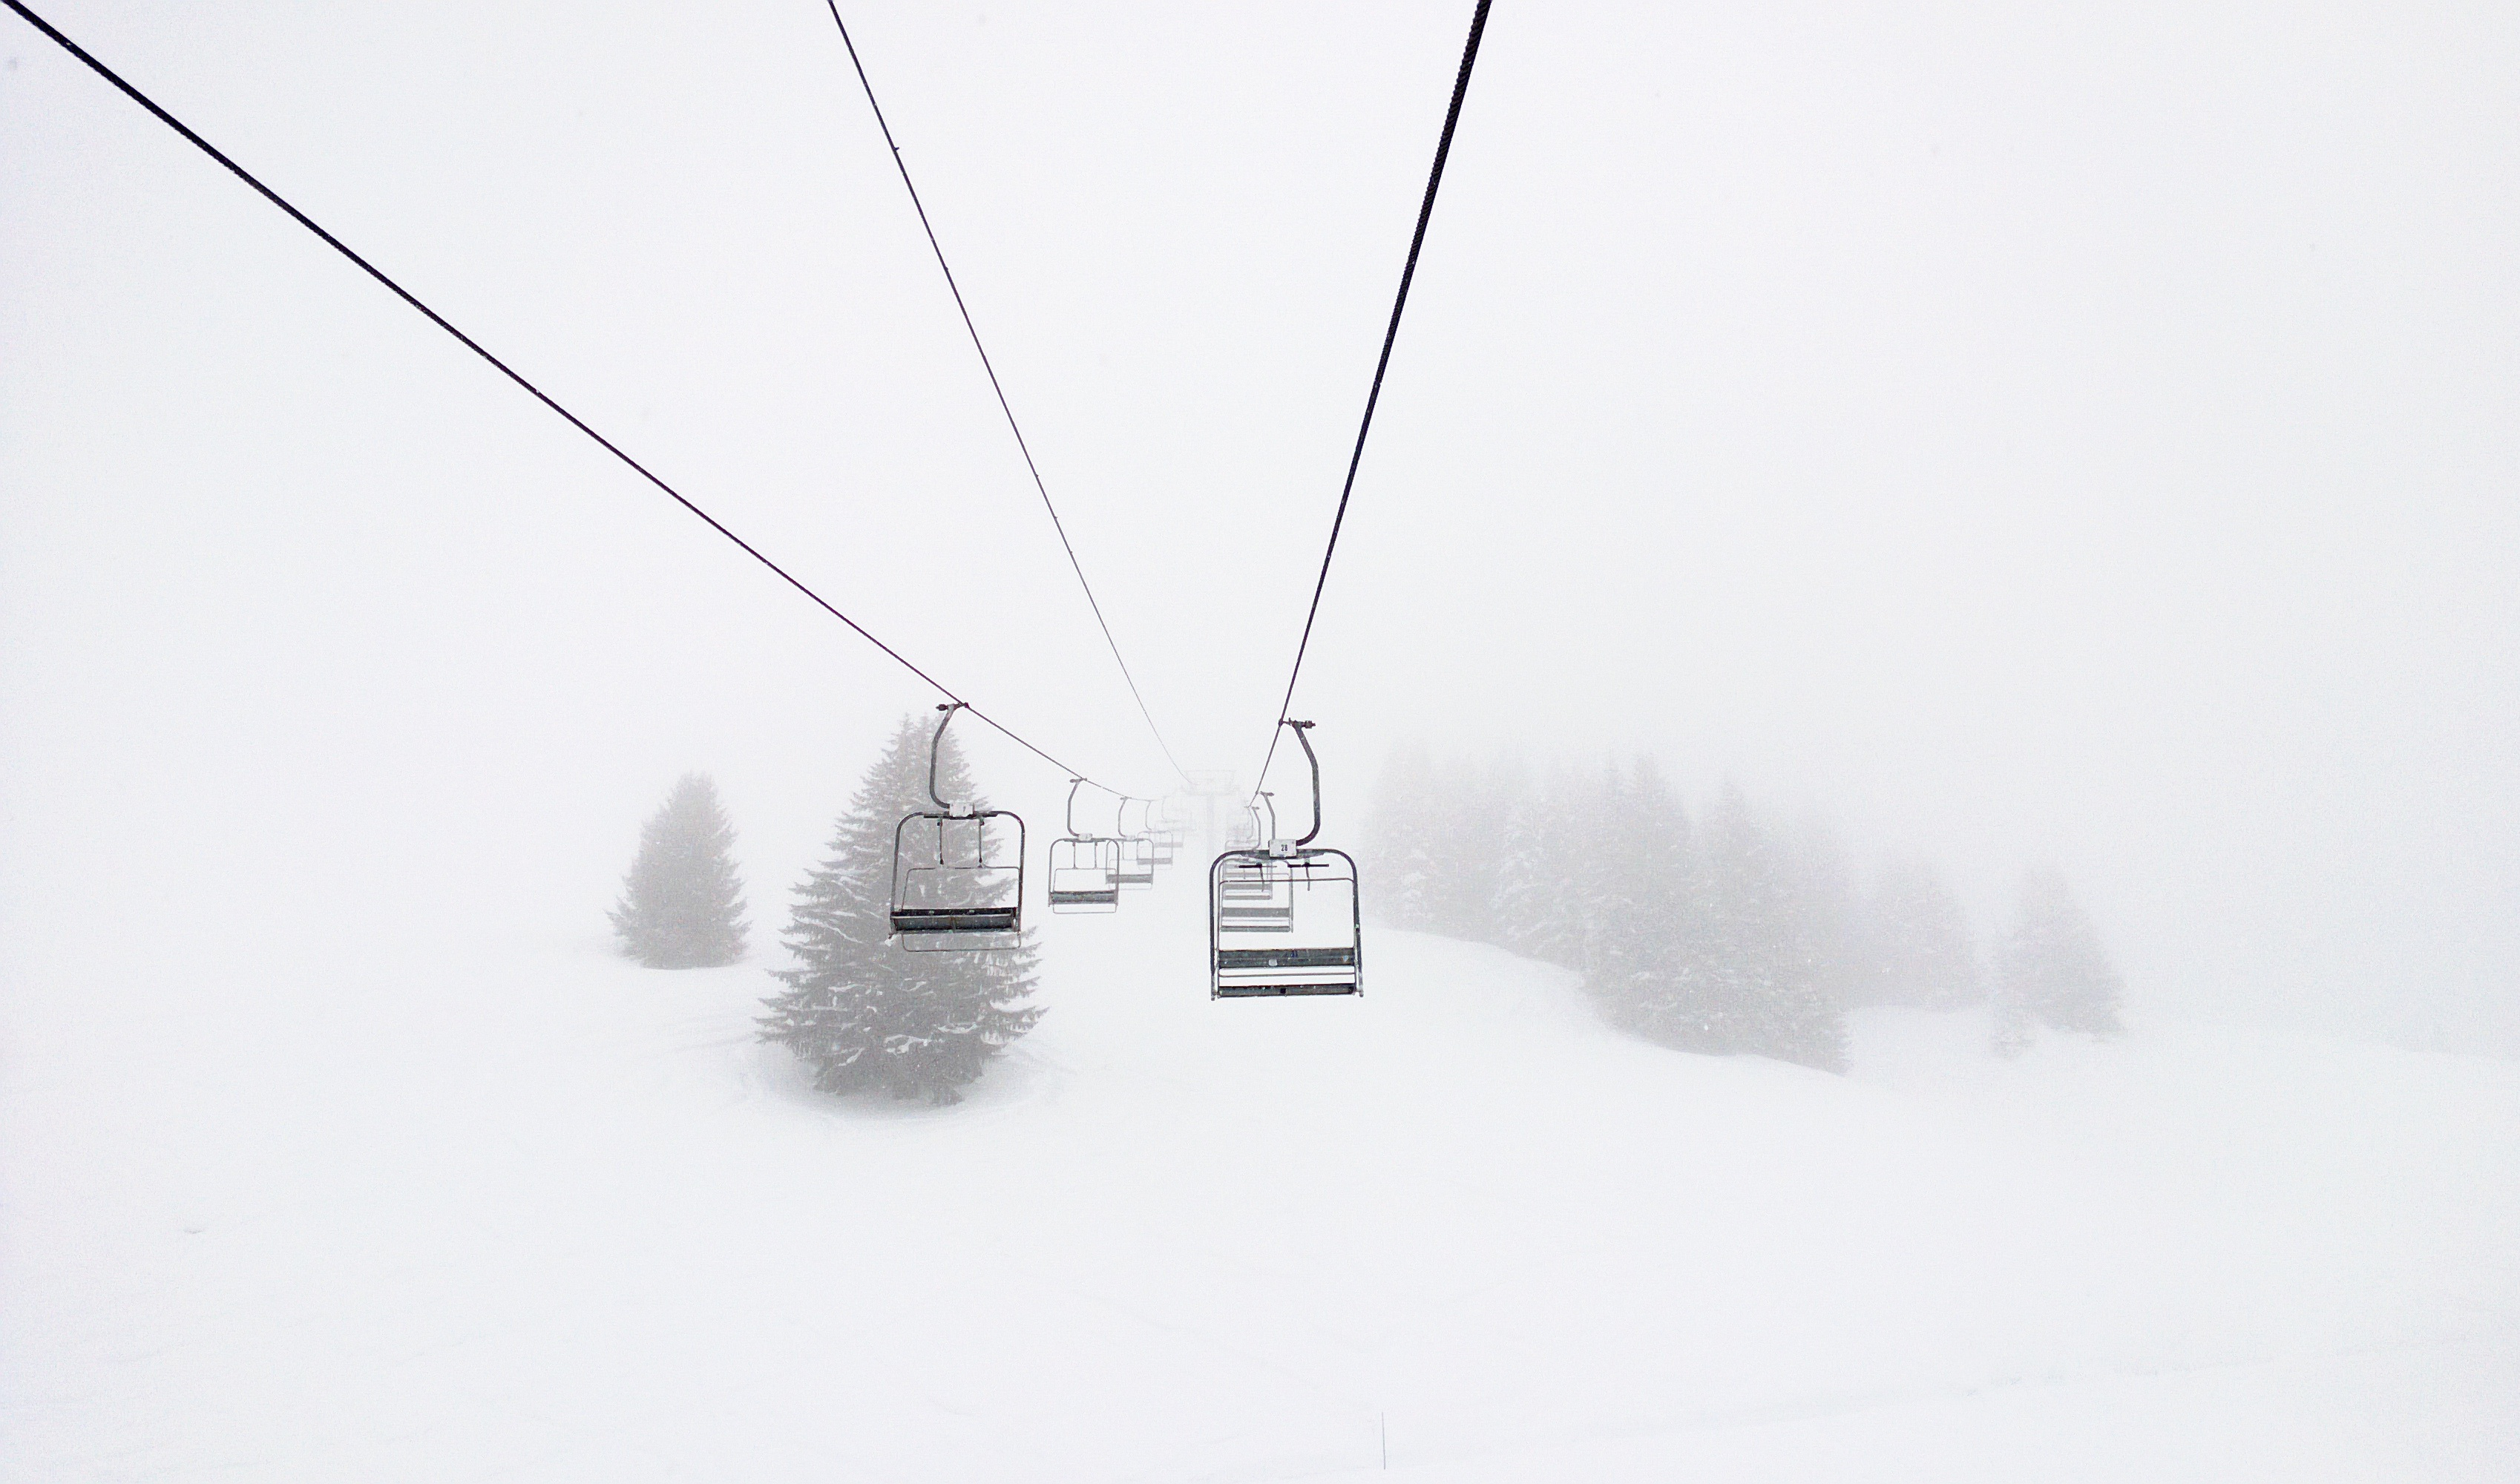 Chairlift, chair, snow, cold, fog, pine, mountain, cables, chair